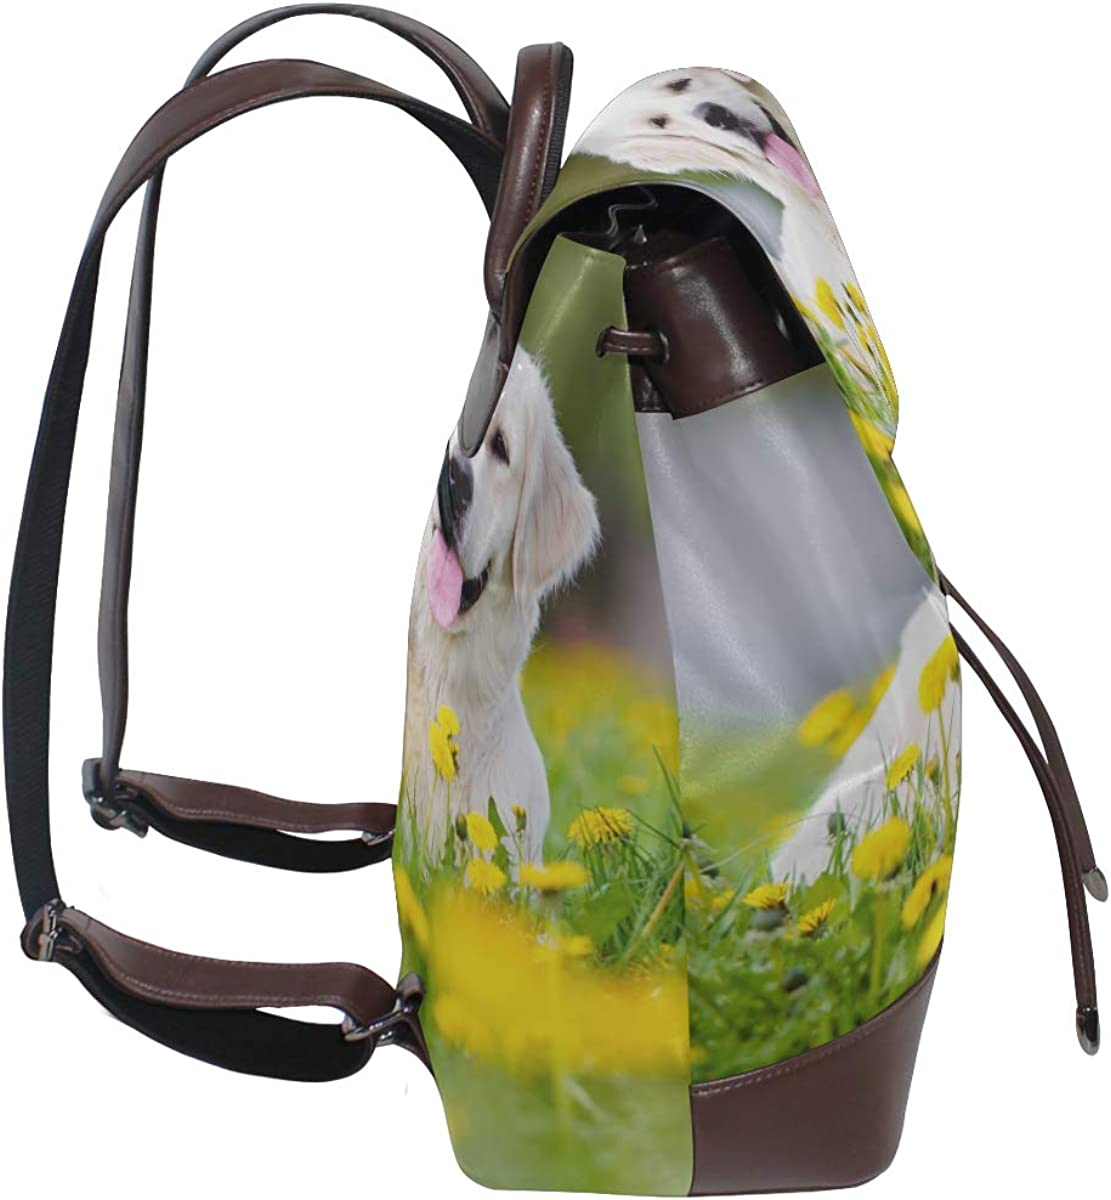 Dog In The Beautiful Flower Fields Leather Backpack Bag Leather Backpack Drawstring Waterproof Backpack Leather Women Unique Shoulder Bags For Women